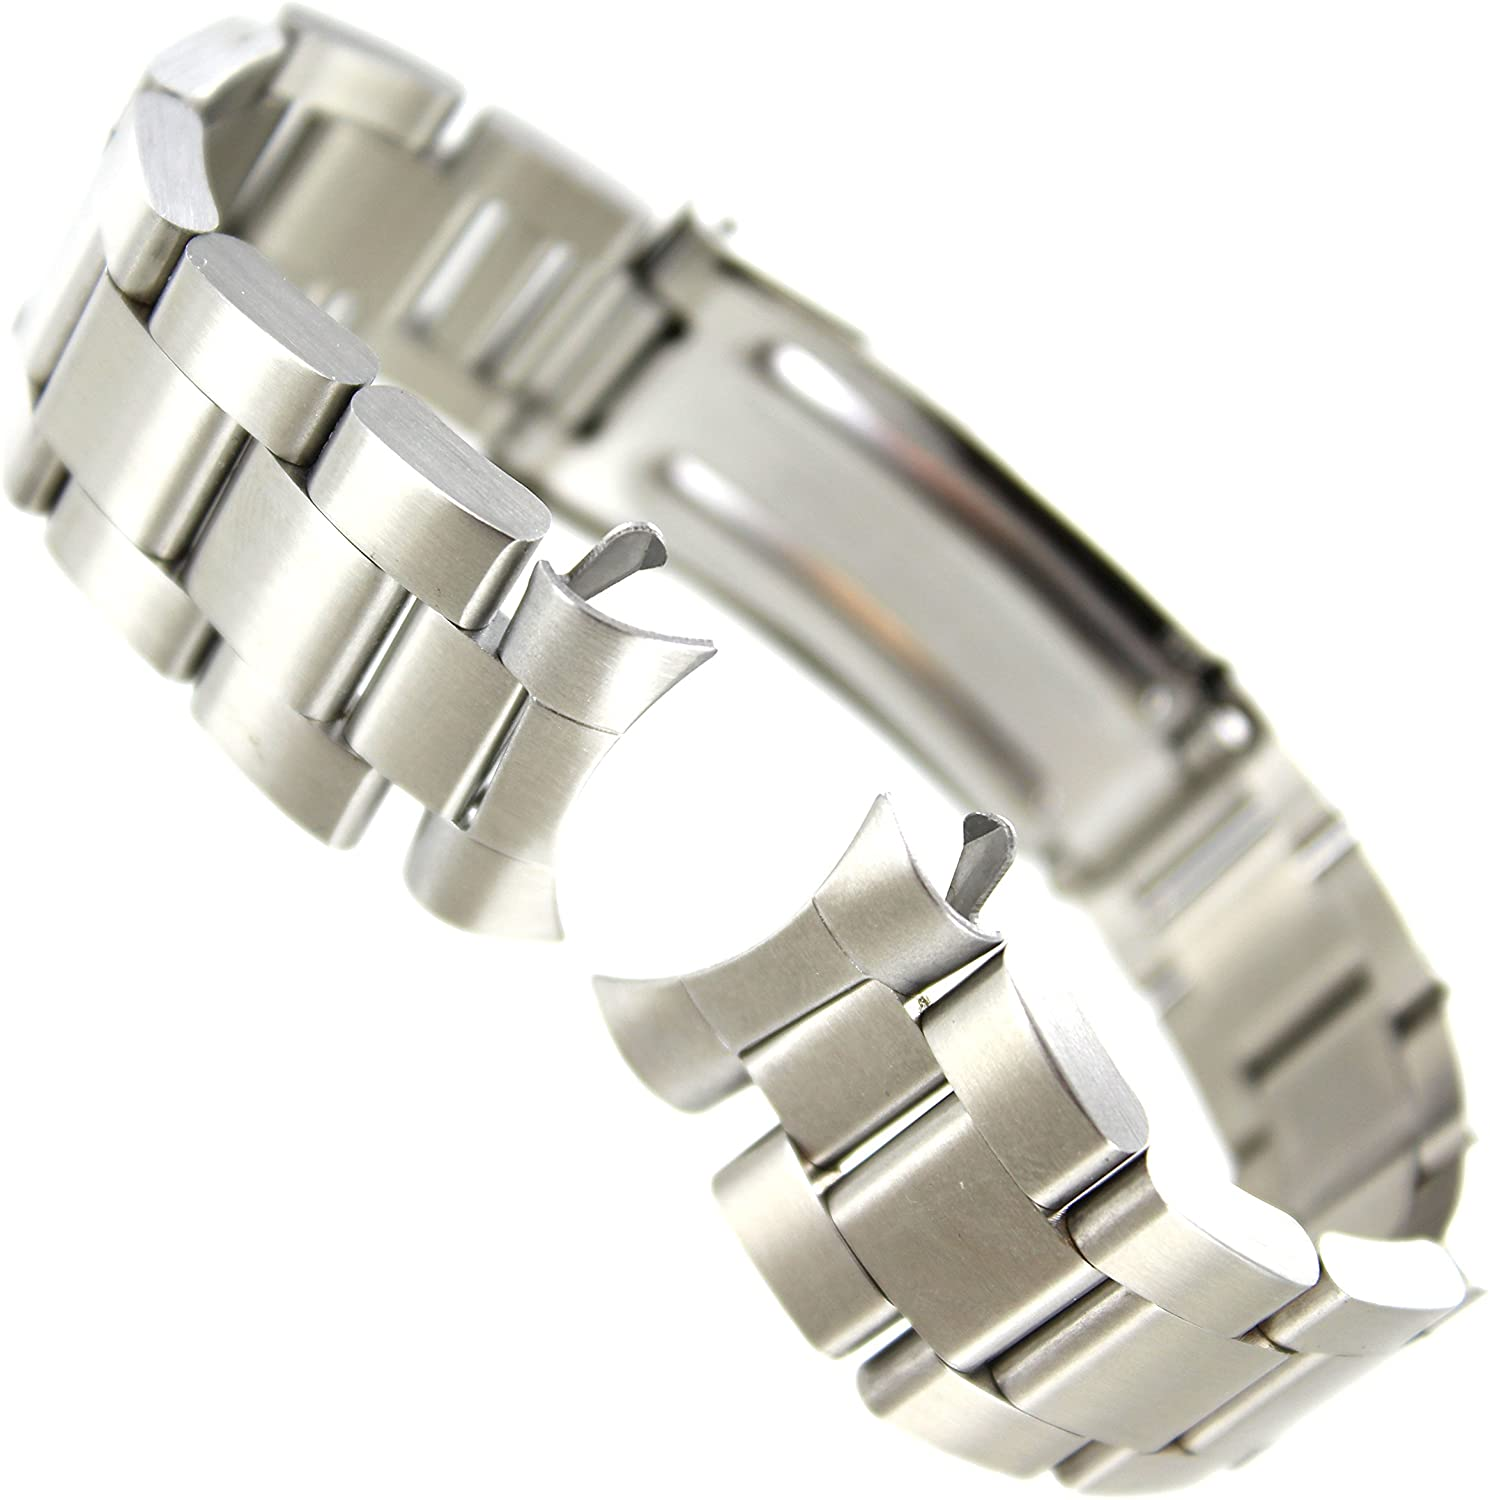 21mm Milano Curved End Semi Solid Stainless Steel Safety Deployment Watch Band